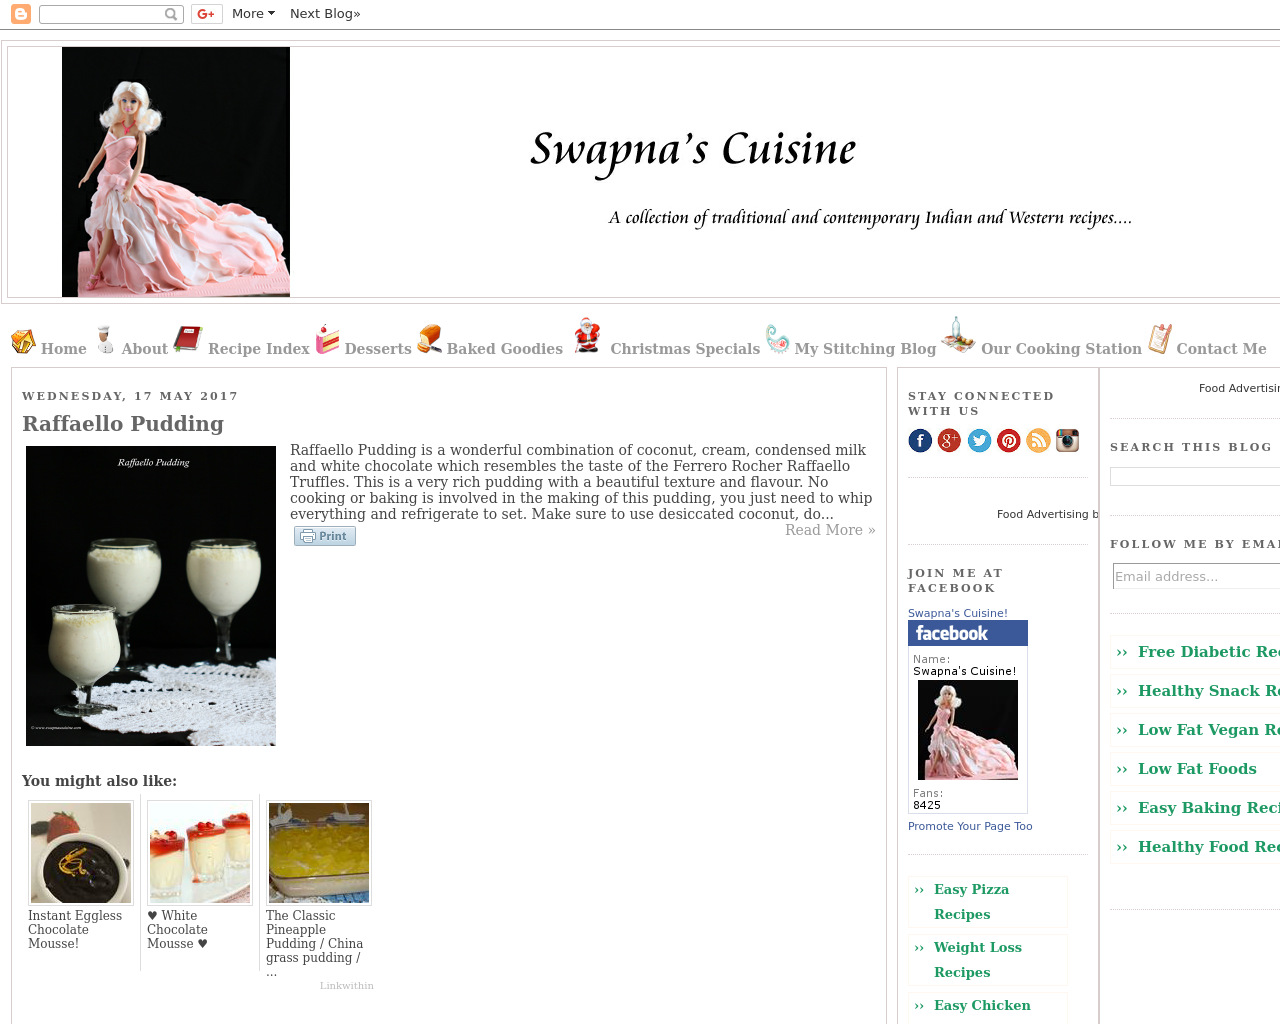 Swapna's-Cuisine-Advertising-Reviews-Pricing